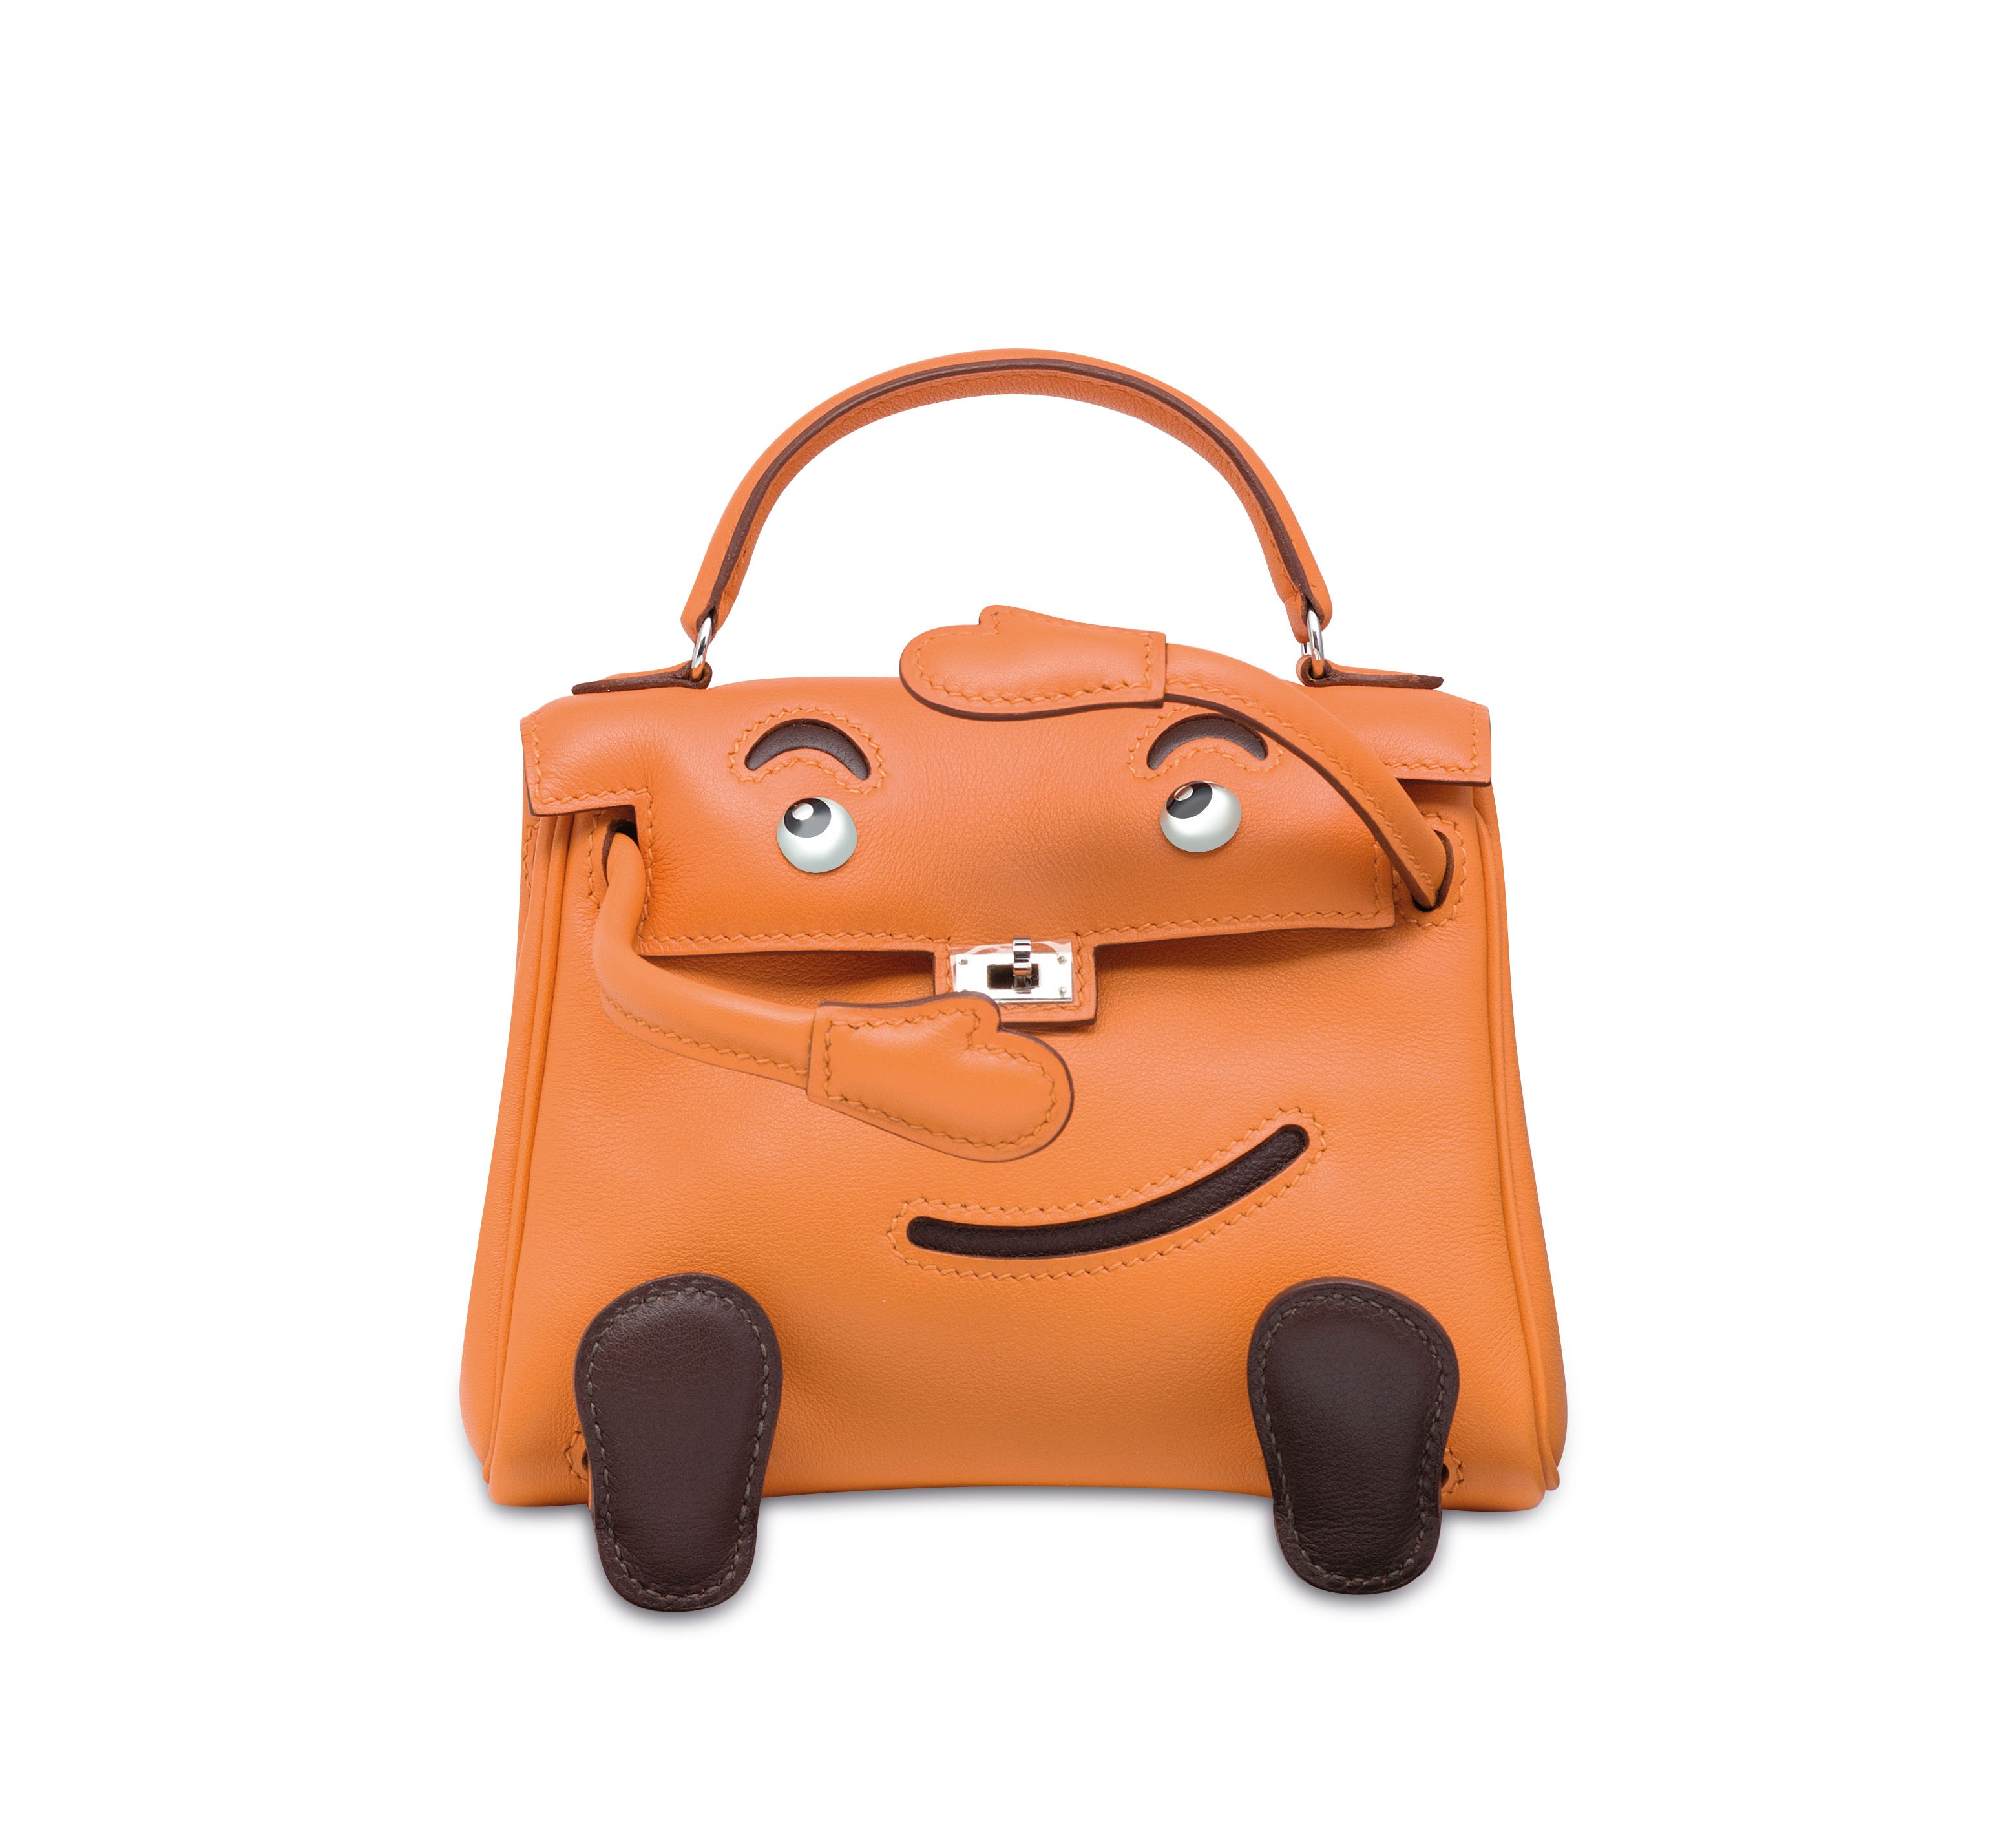 The Diminutive Bag Hermes Called Quelle Idole A Play On Kelly Doll Was